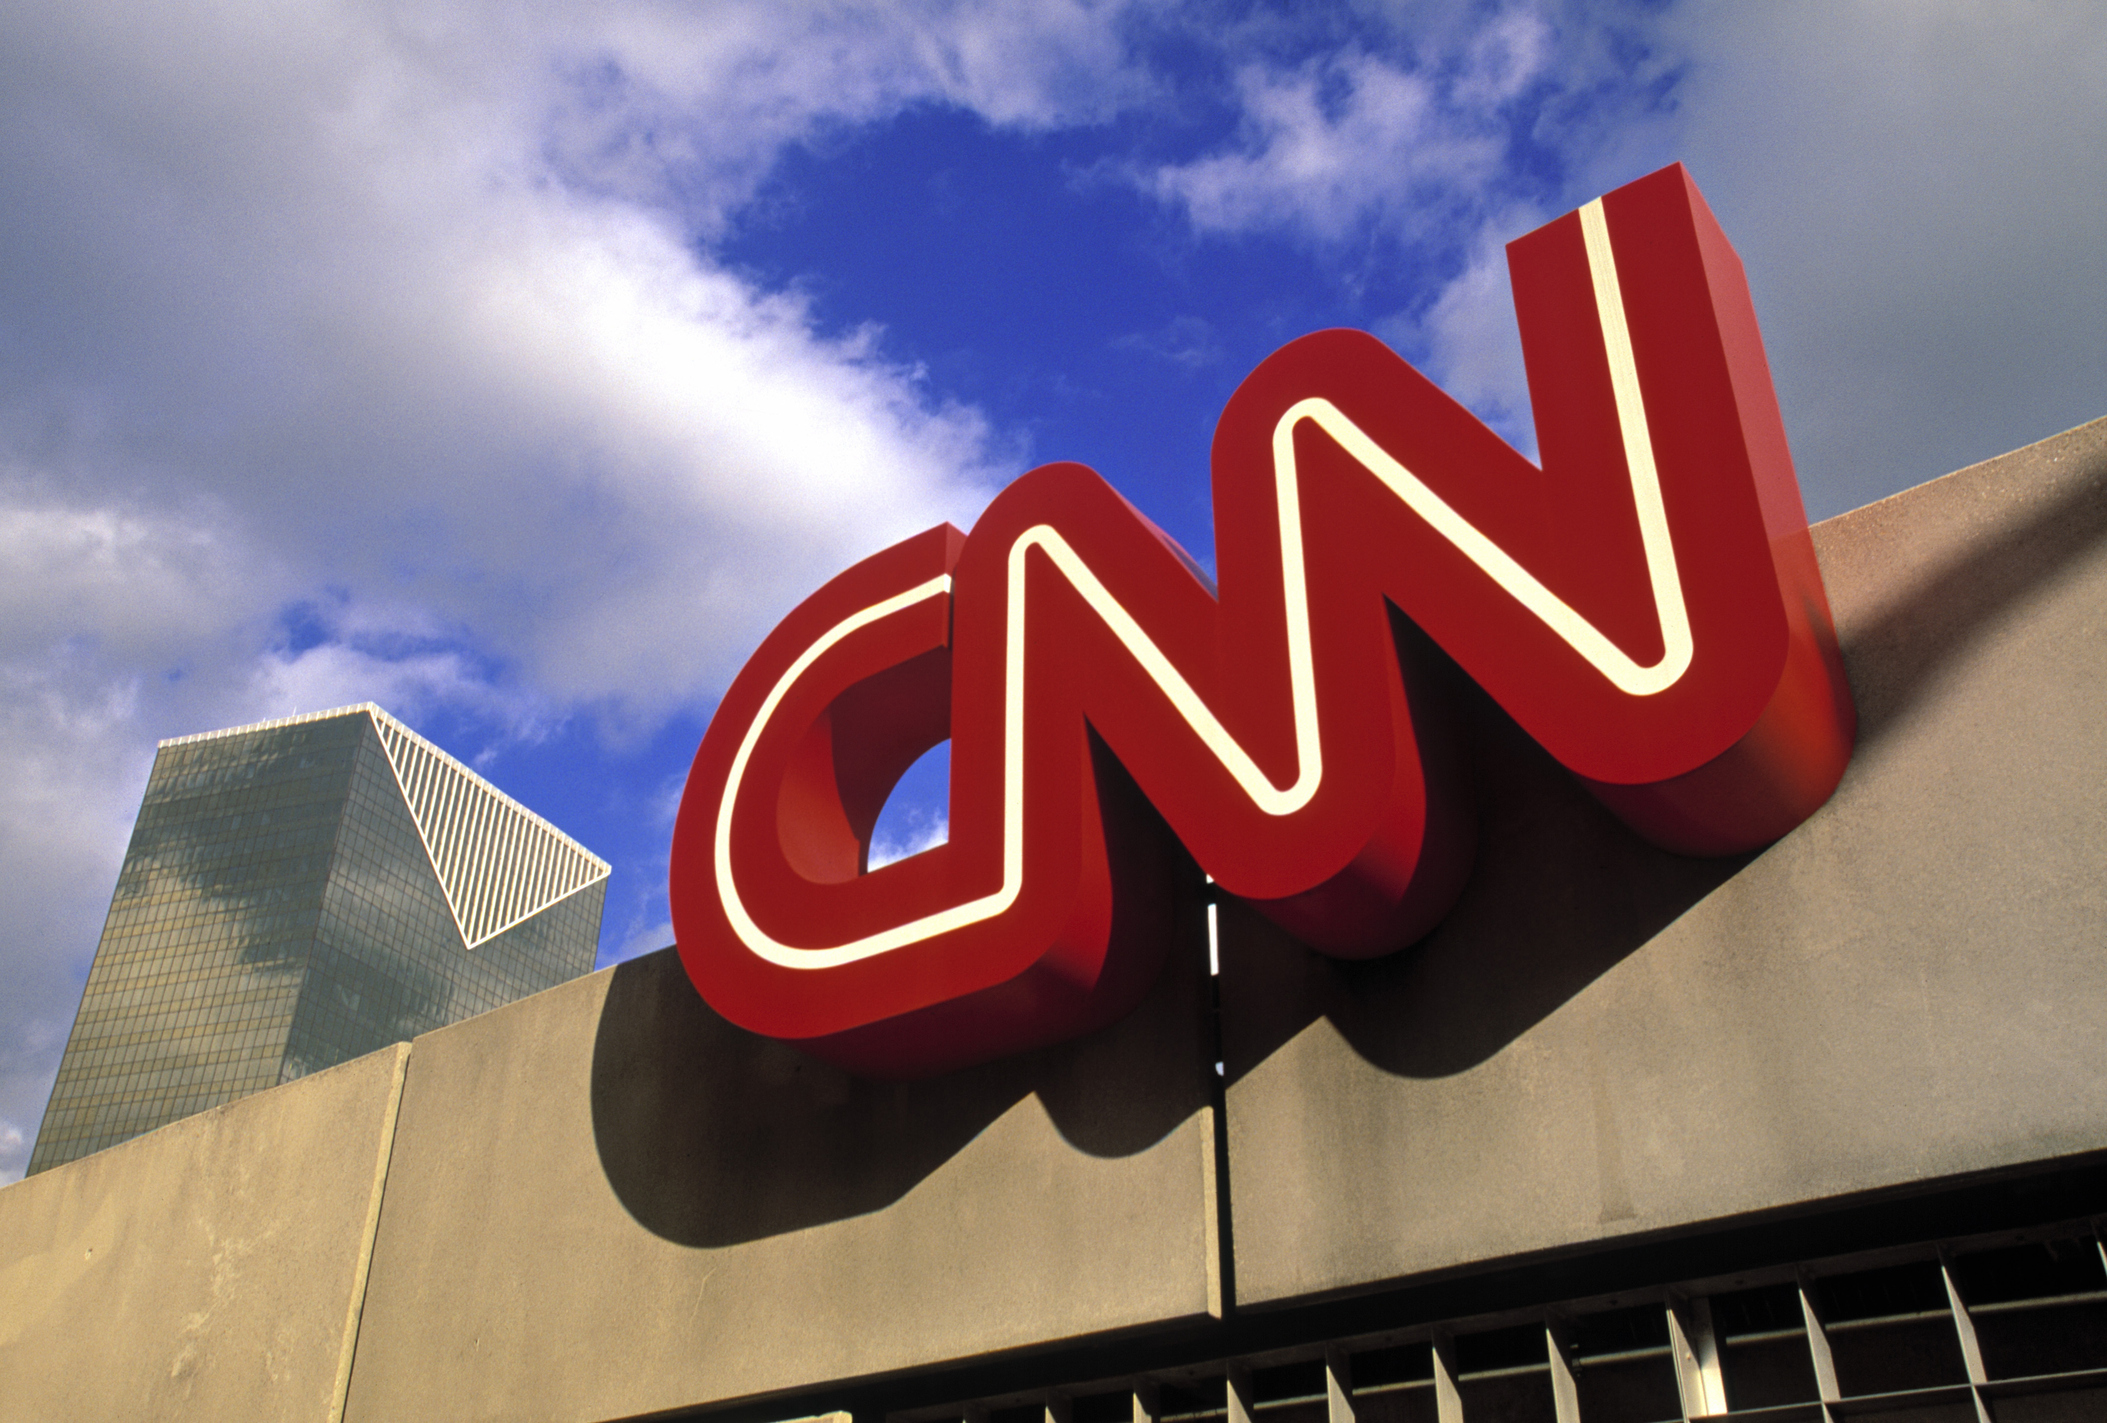 CNN Center, Atlanta, Georgia, USA